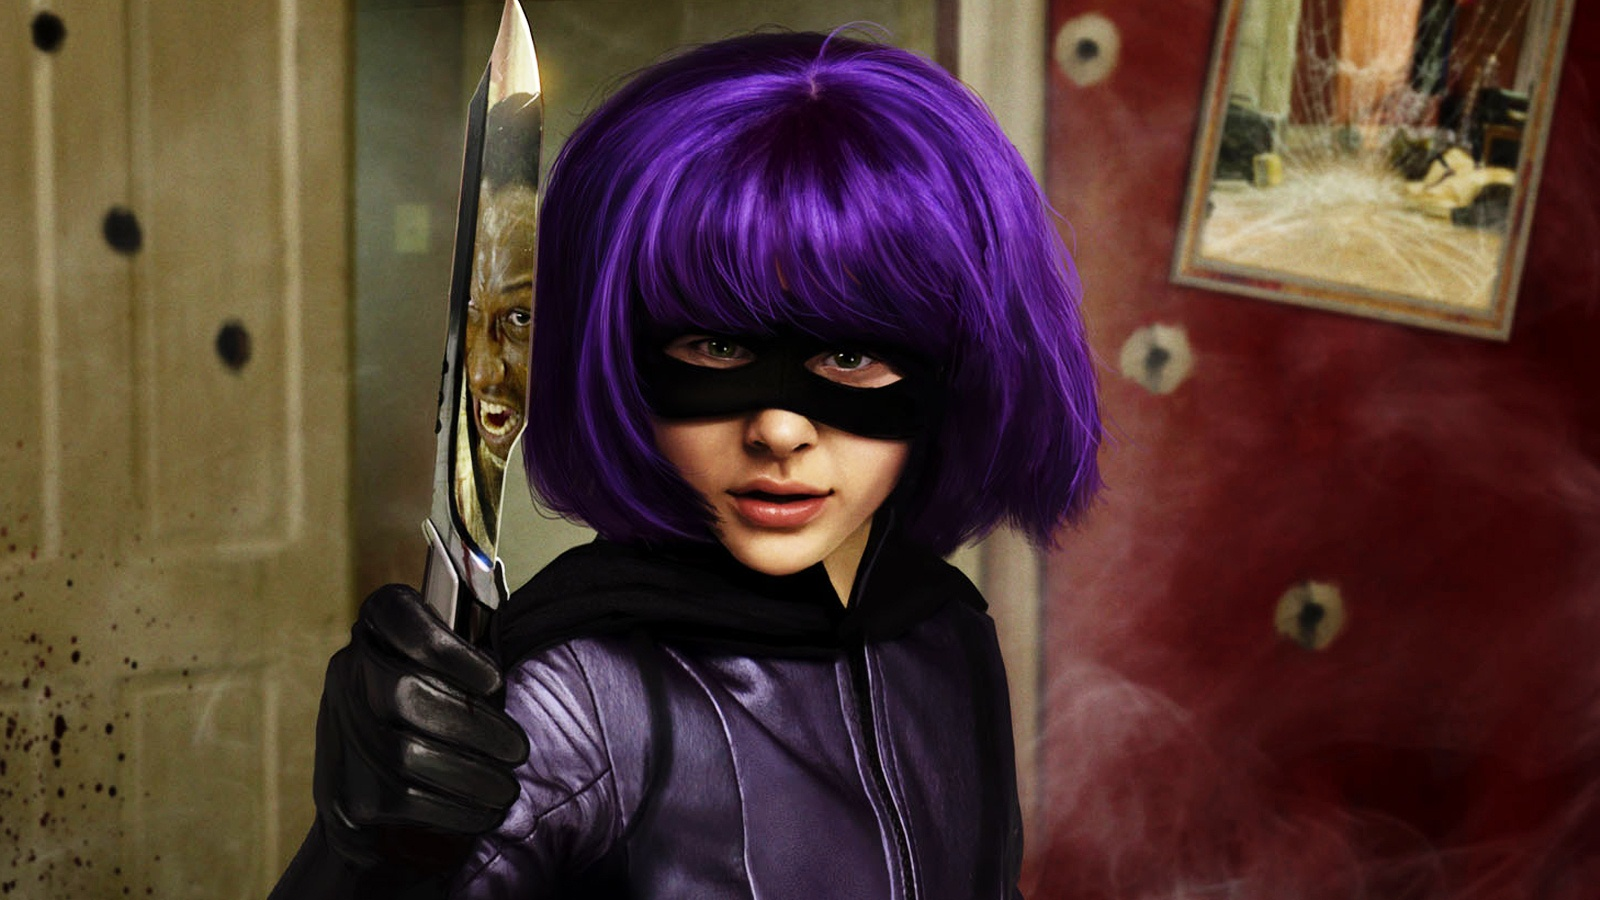 Sincere Girl Wallpaper Hit Girl In Kick Ass Post In 1600 215 900 Pixel You Can